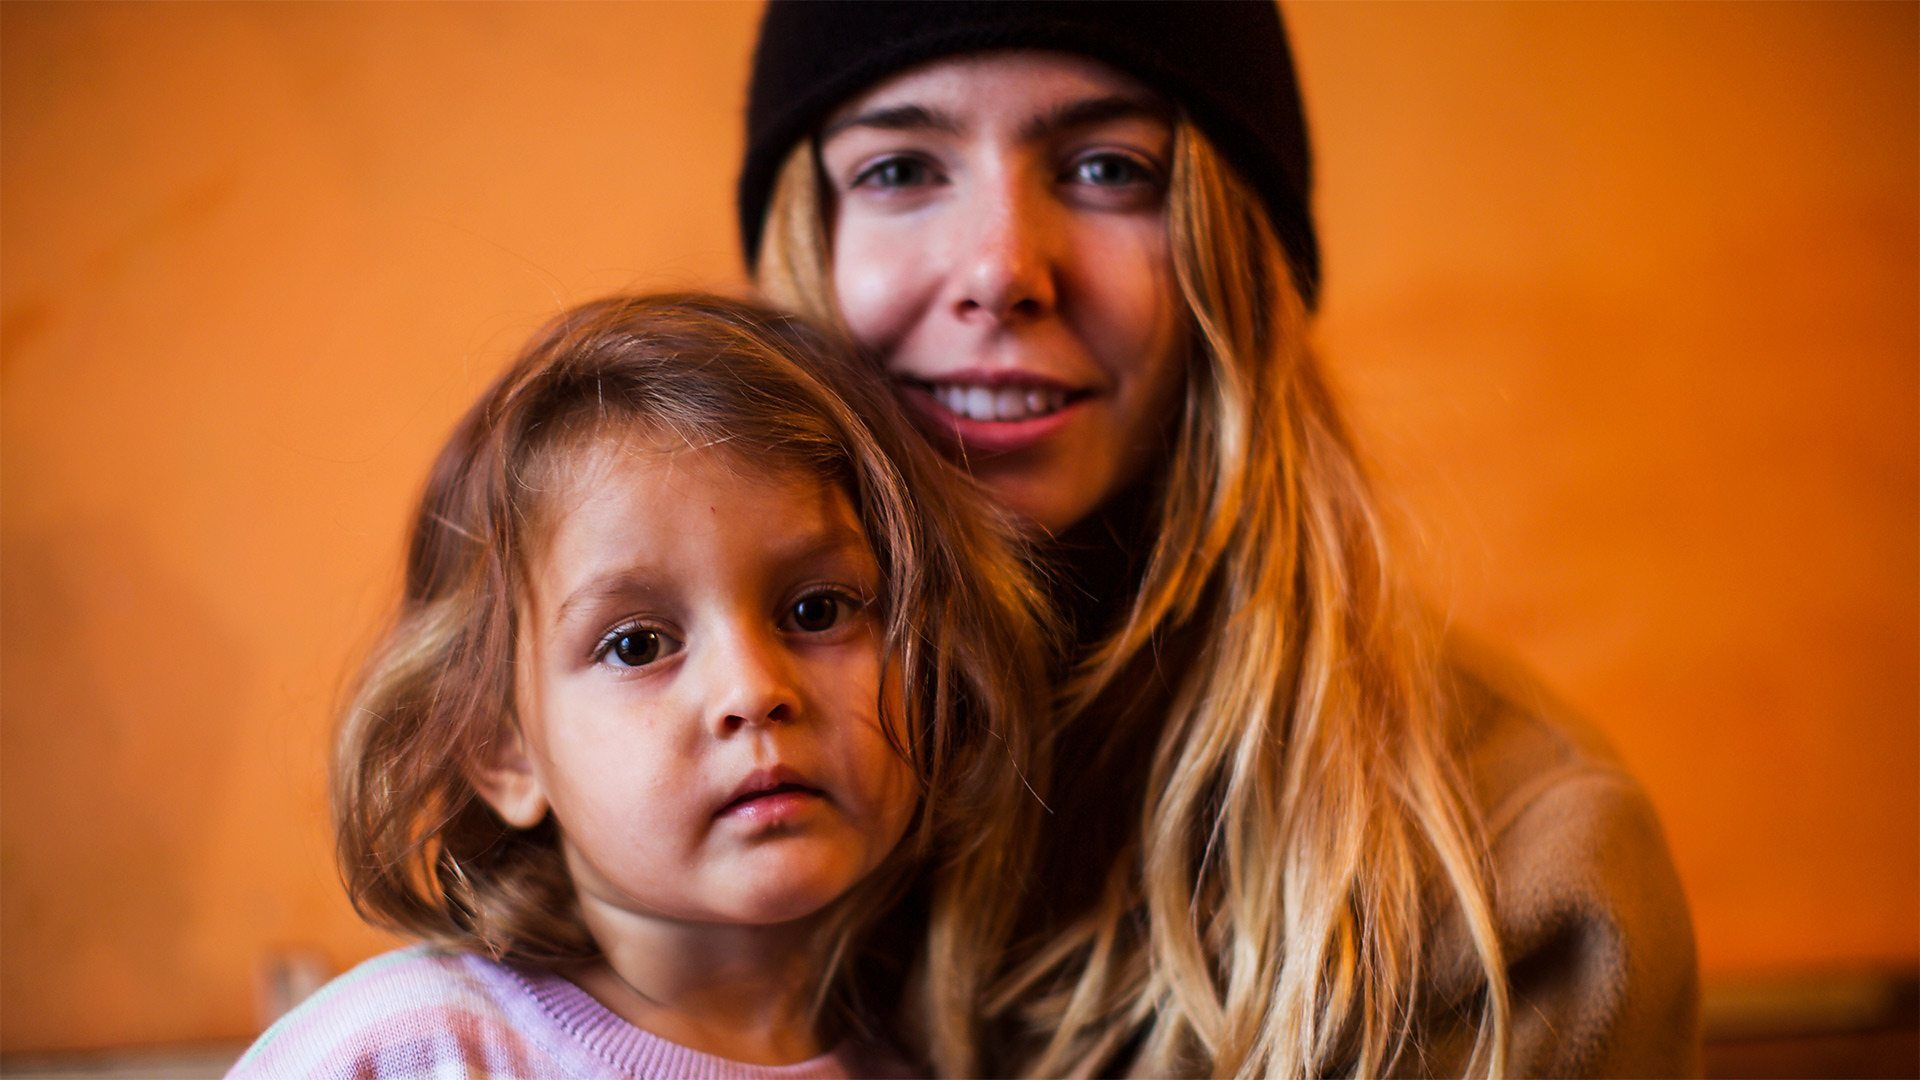 Stacey Dooley Investigates — s07 special-10 — Gypsy Kids Taken from Home